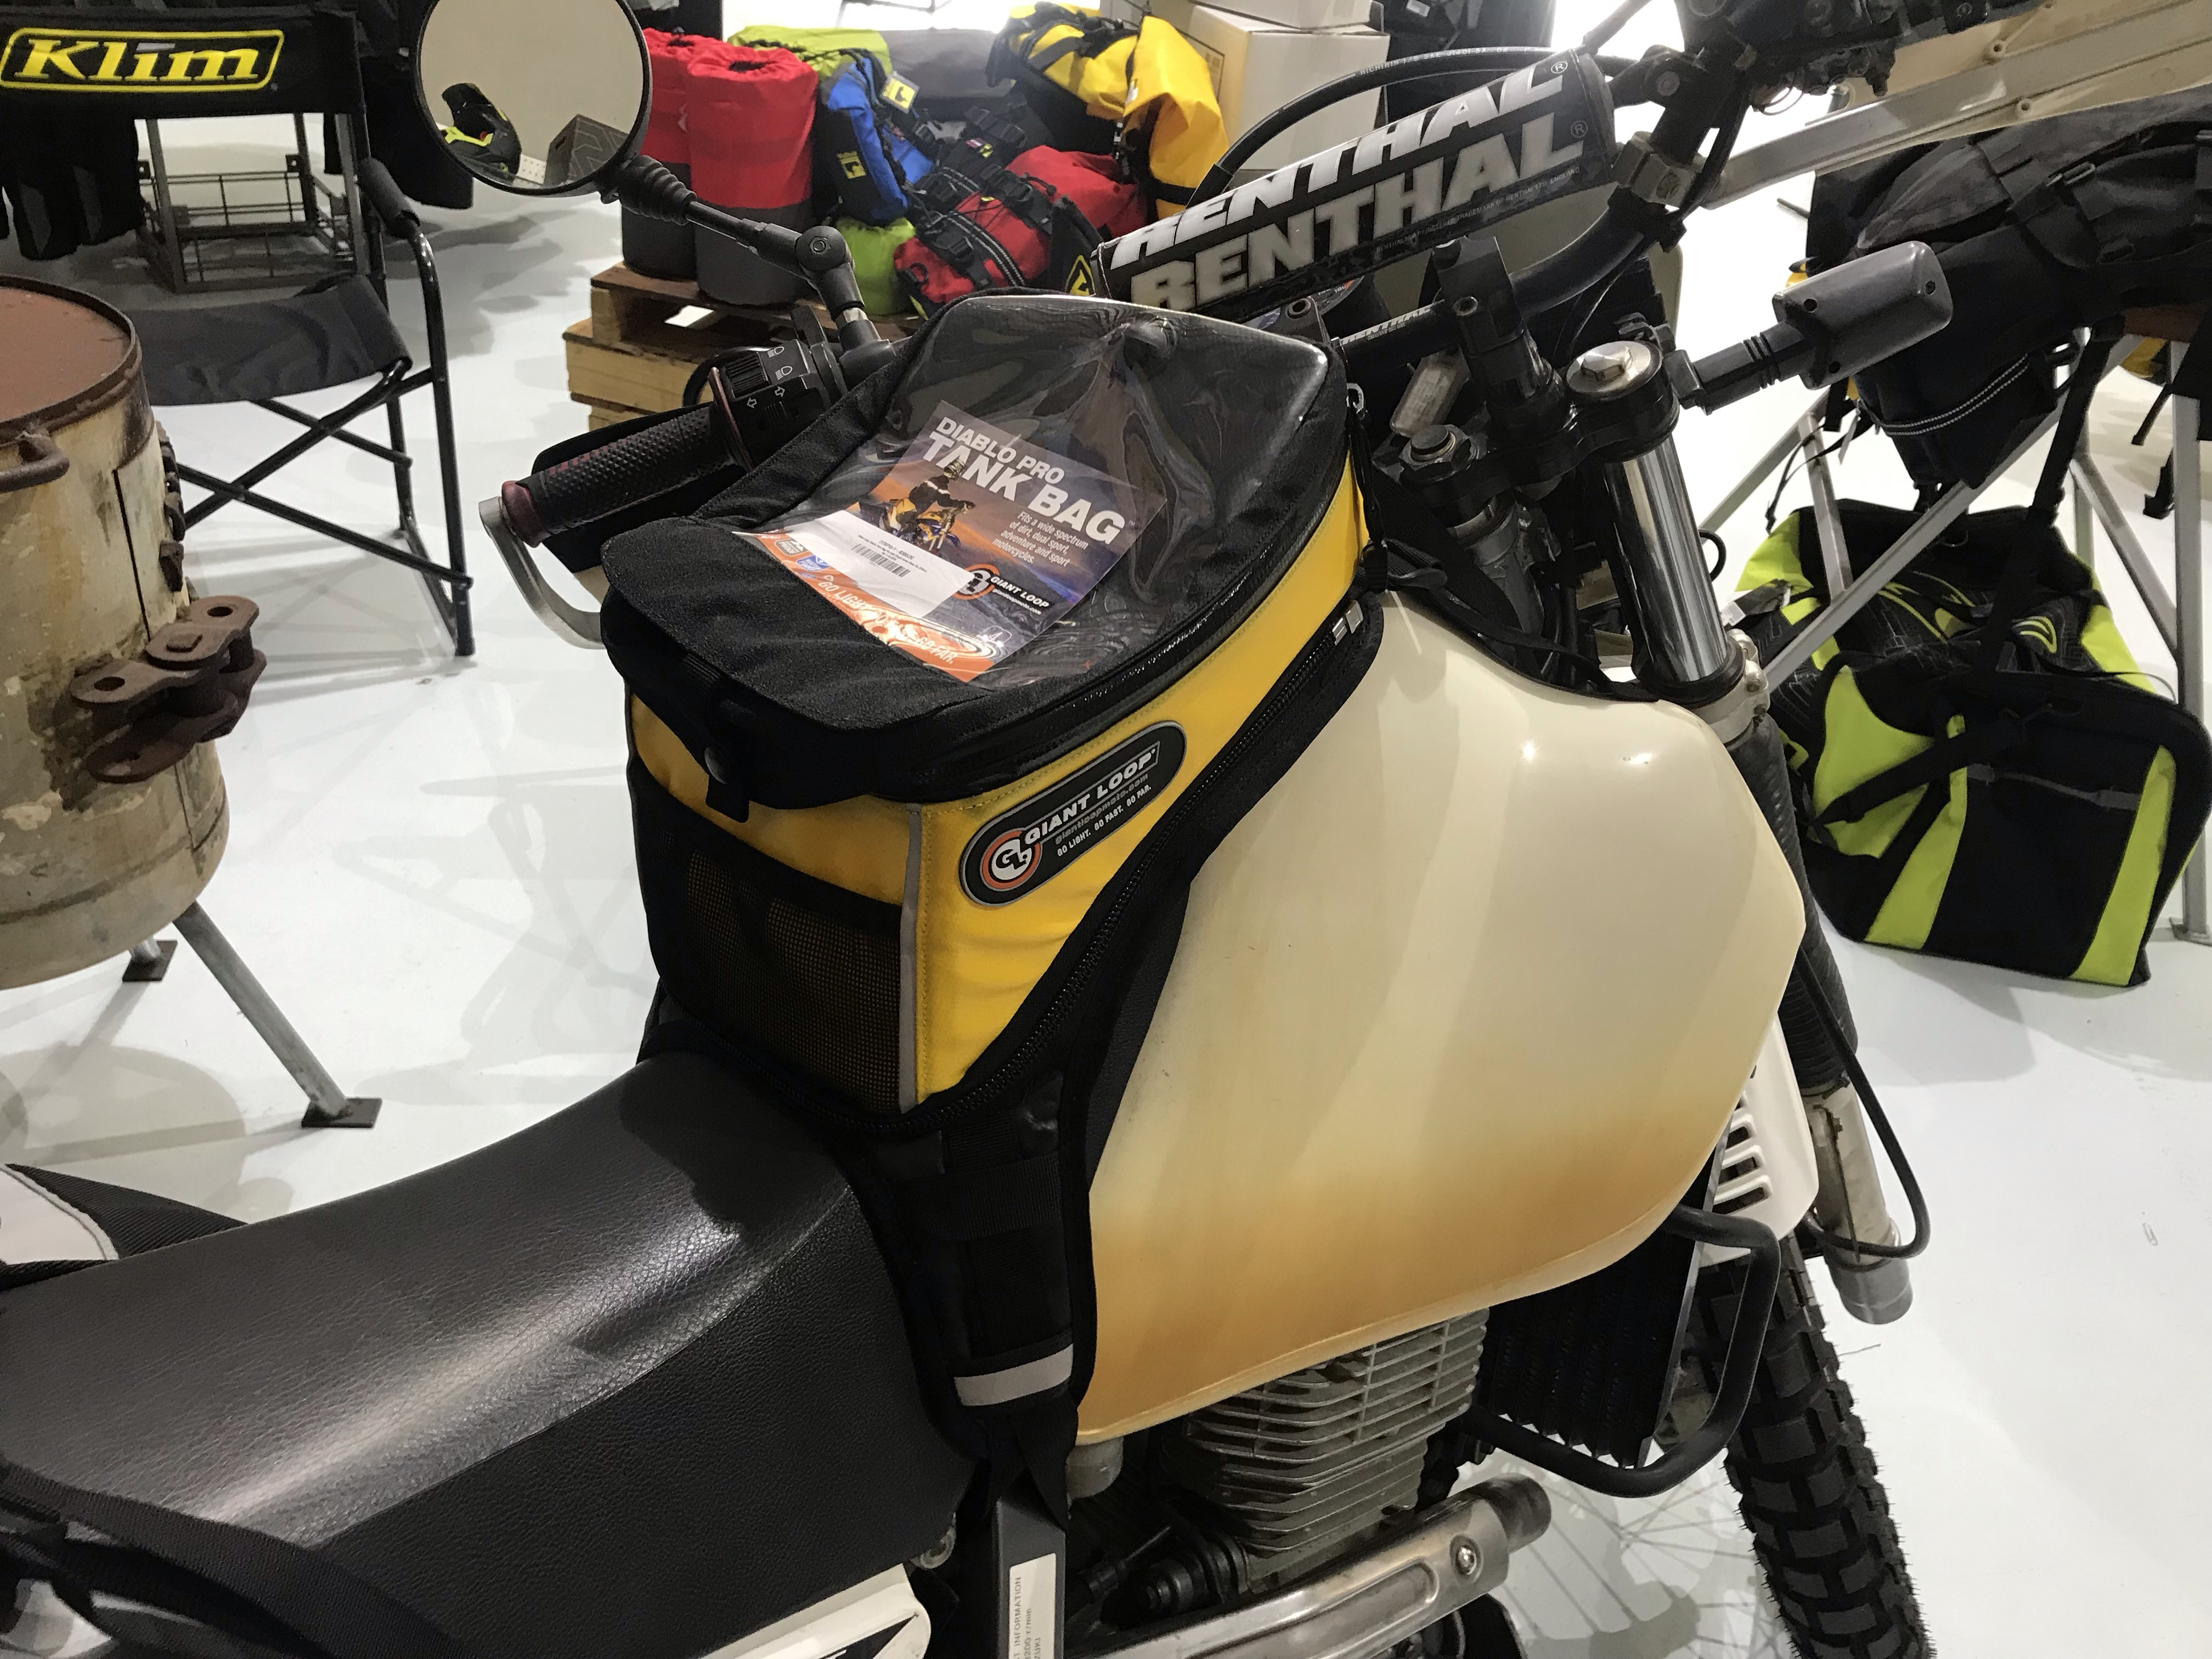 Suzuki DR 650 with Coyote Saddlebag, Diablo Pro Tank Bag, Fender Bag, Tillamook Dry Bag